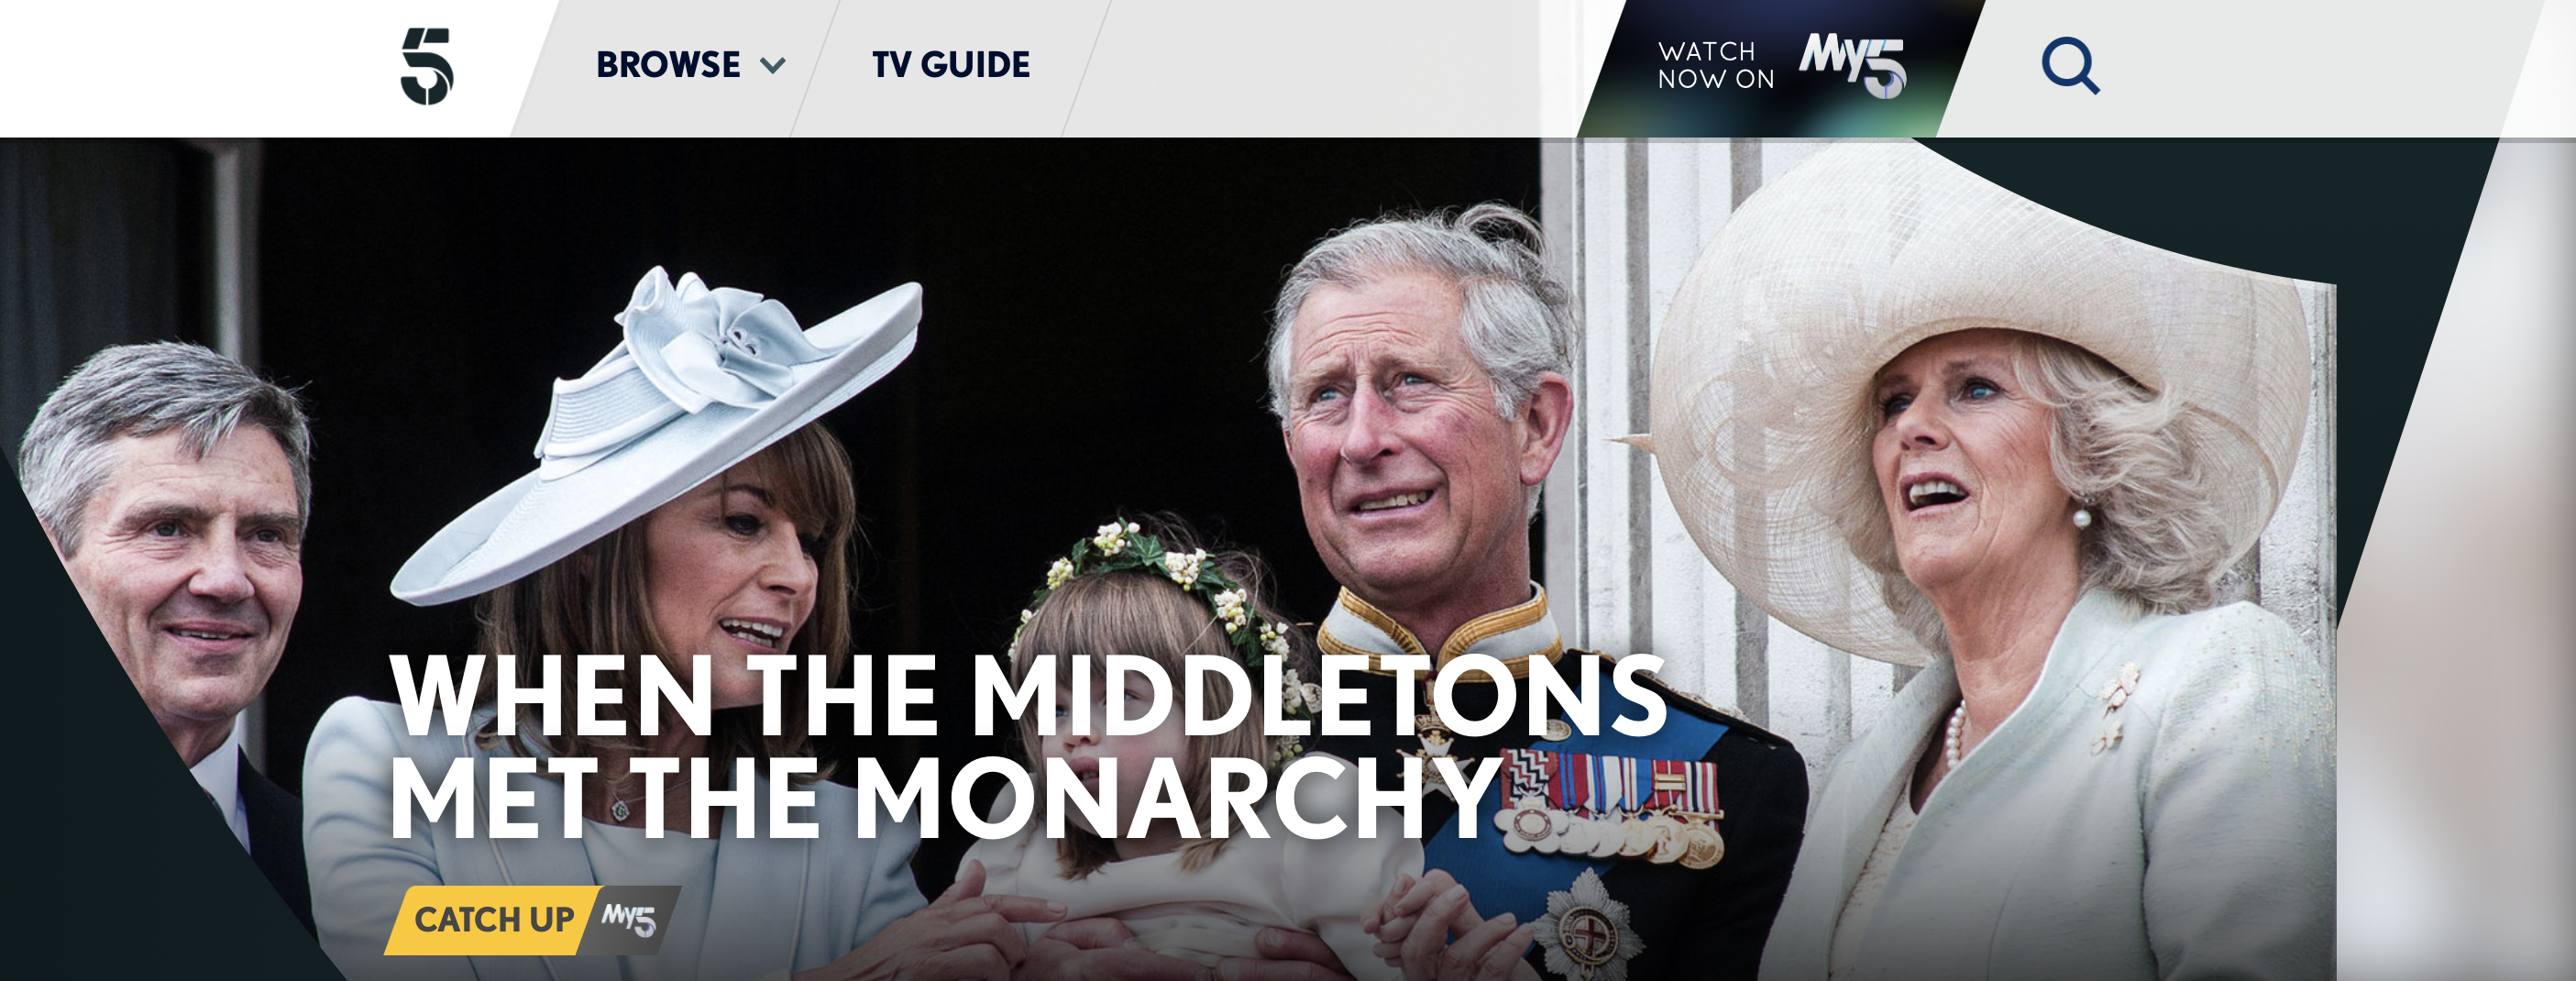 When The Middletons Met The Monarchy